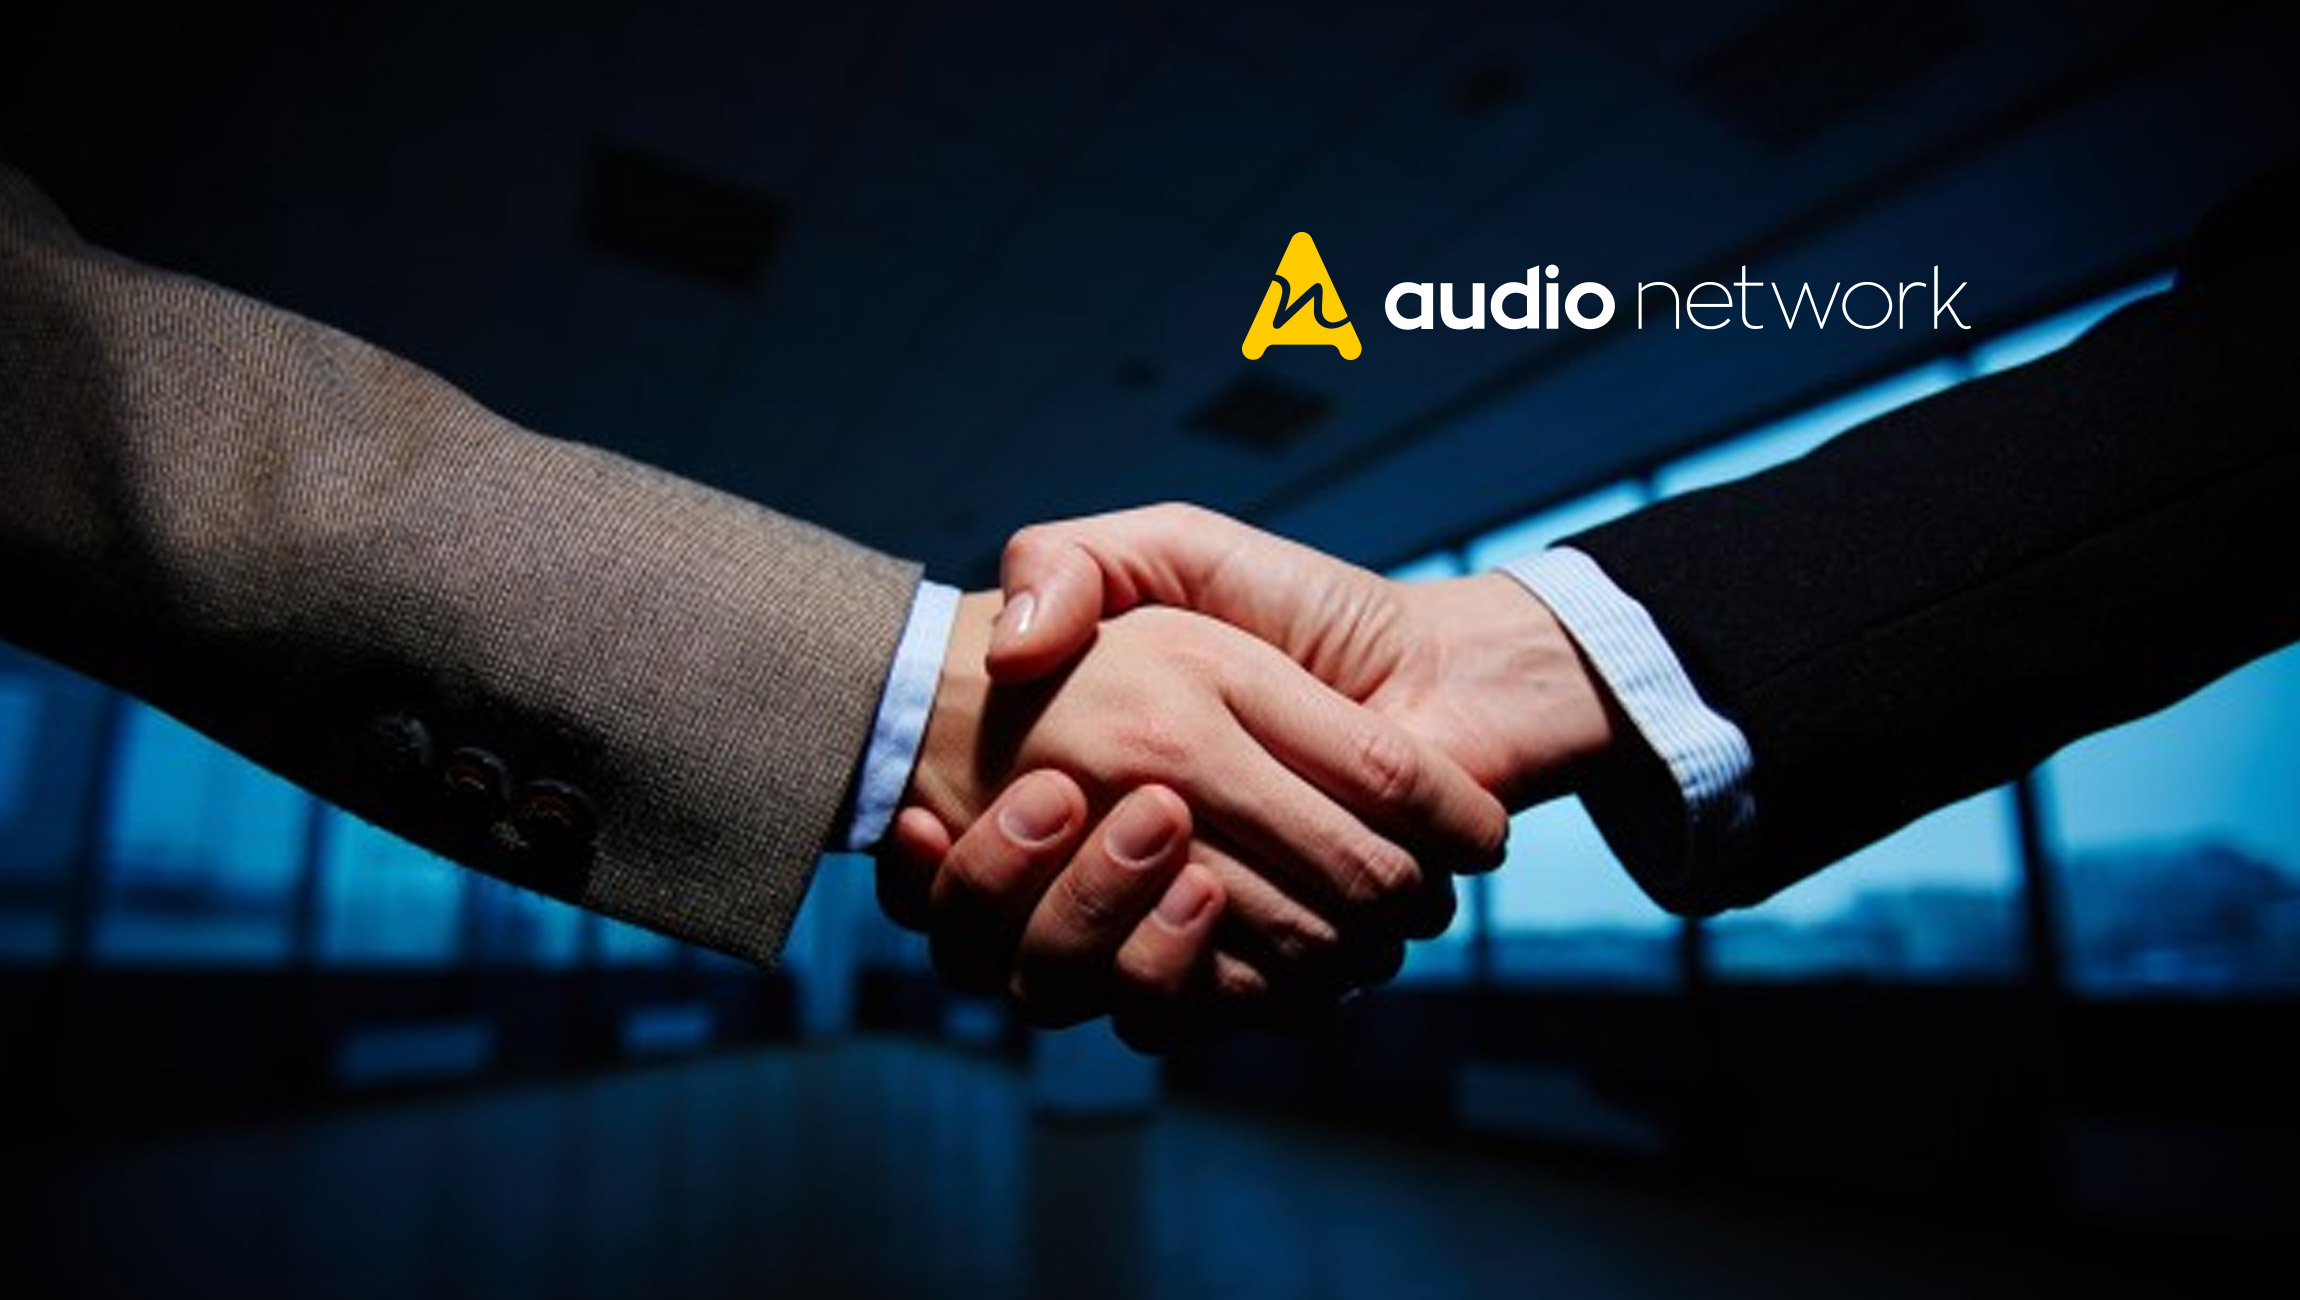 Audio Network Partners with Musiio to Harness the Power of Artificial Intelligence (AI)